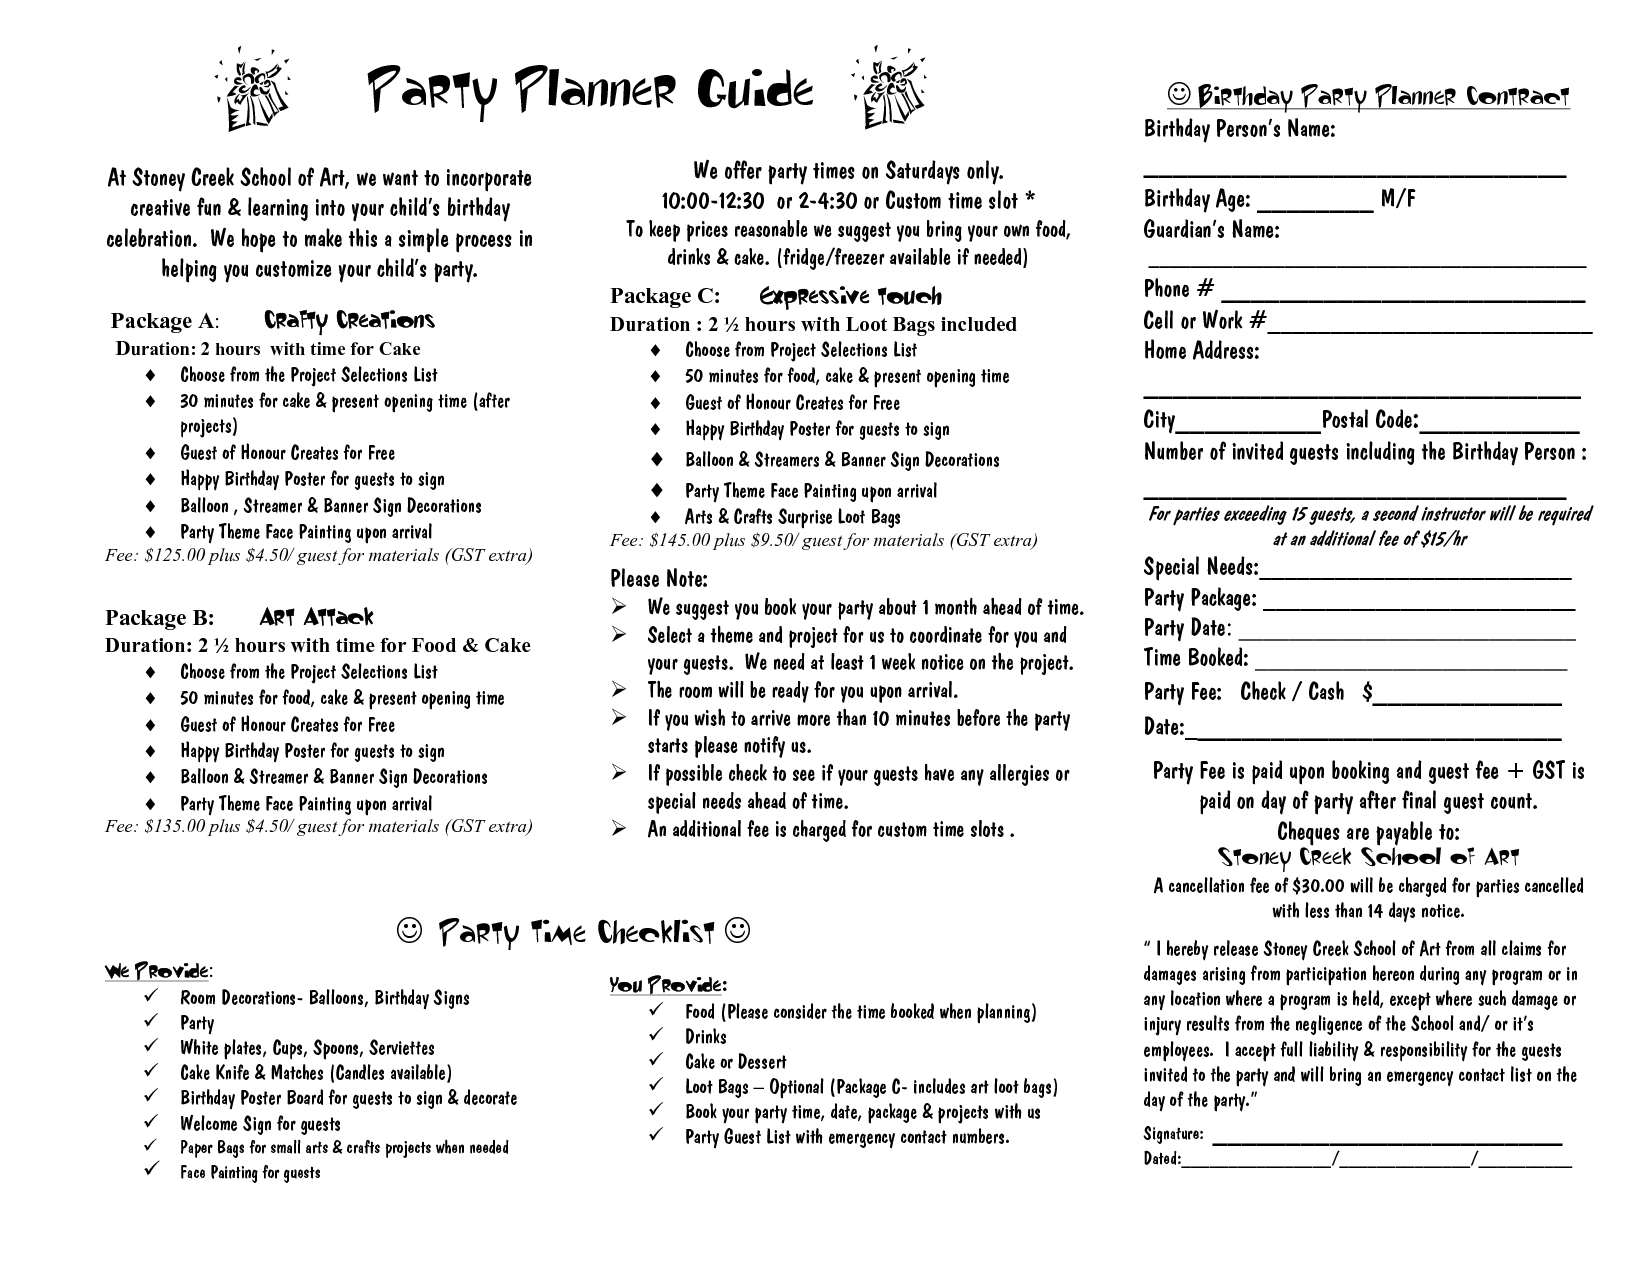 Party Planner Contract Template   Google Search  Event Planner Contract Example